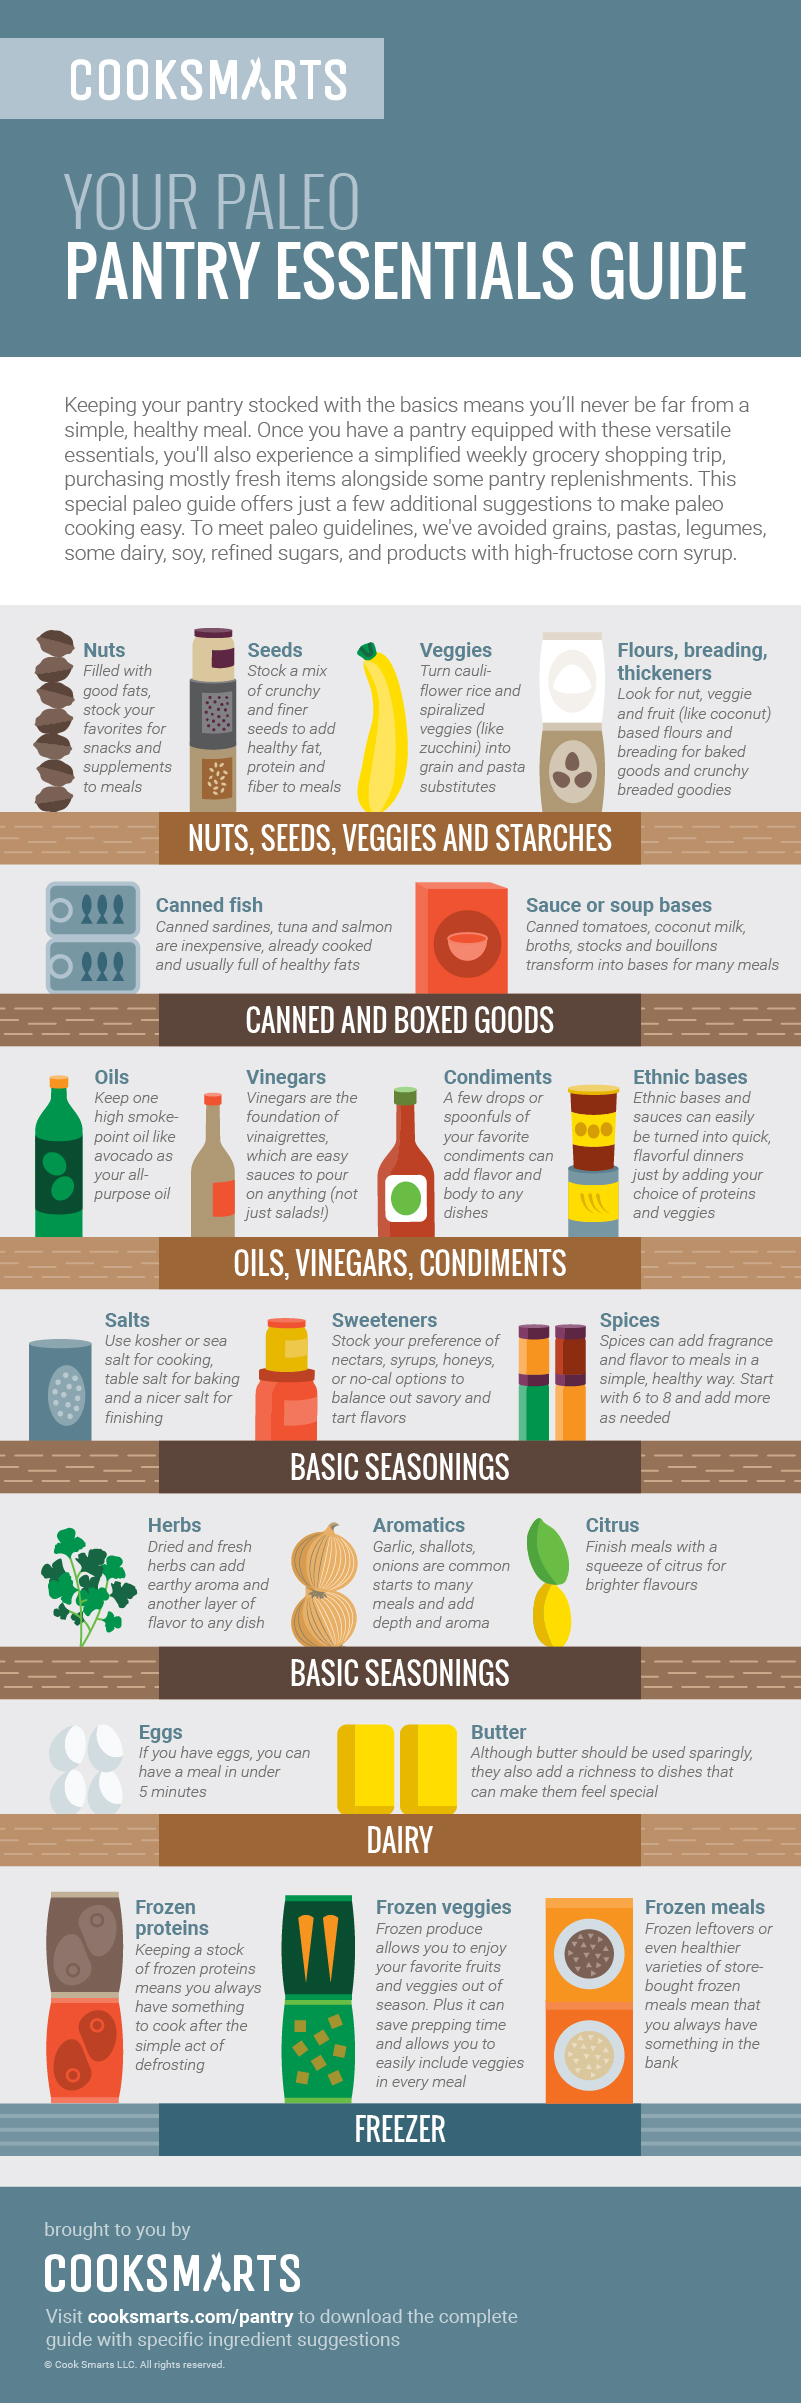 Guide to Paleo Pantry Essentials Infographic | Cook Smarts